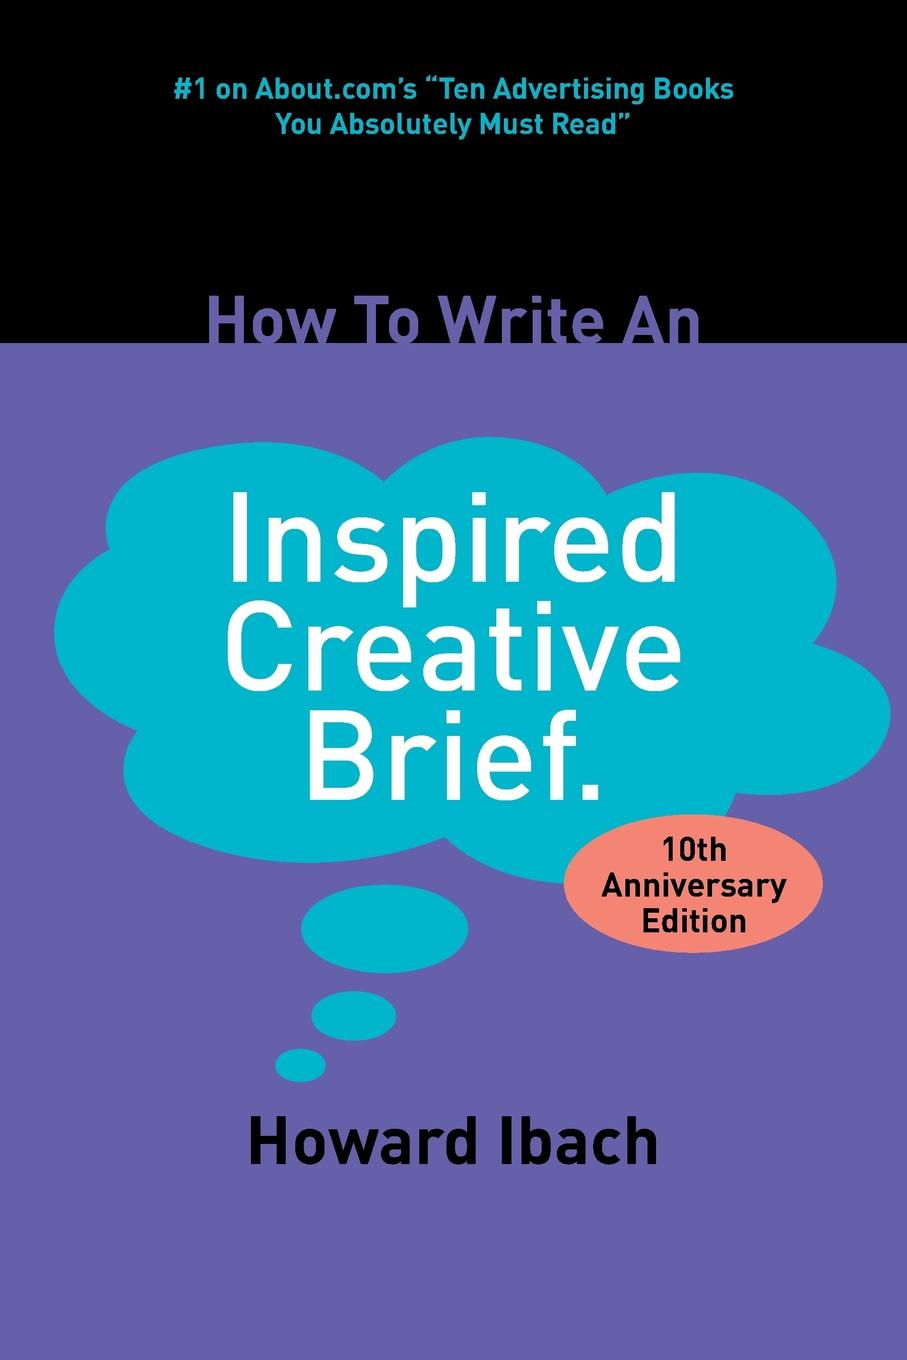 Howard Ibach How To Write An Inspired Creative Brief. 2nd edition michael roberto a unlocking creativity how to solve any problem and make the best decisions by shifting creative mindsets